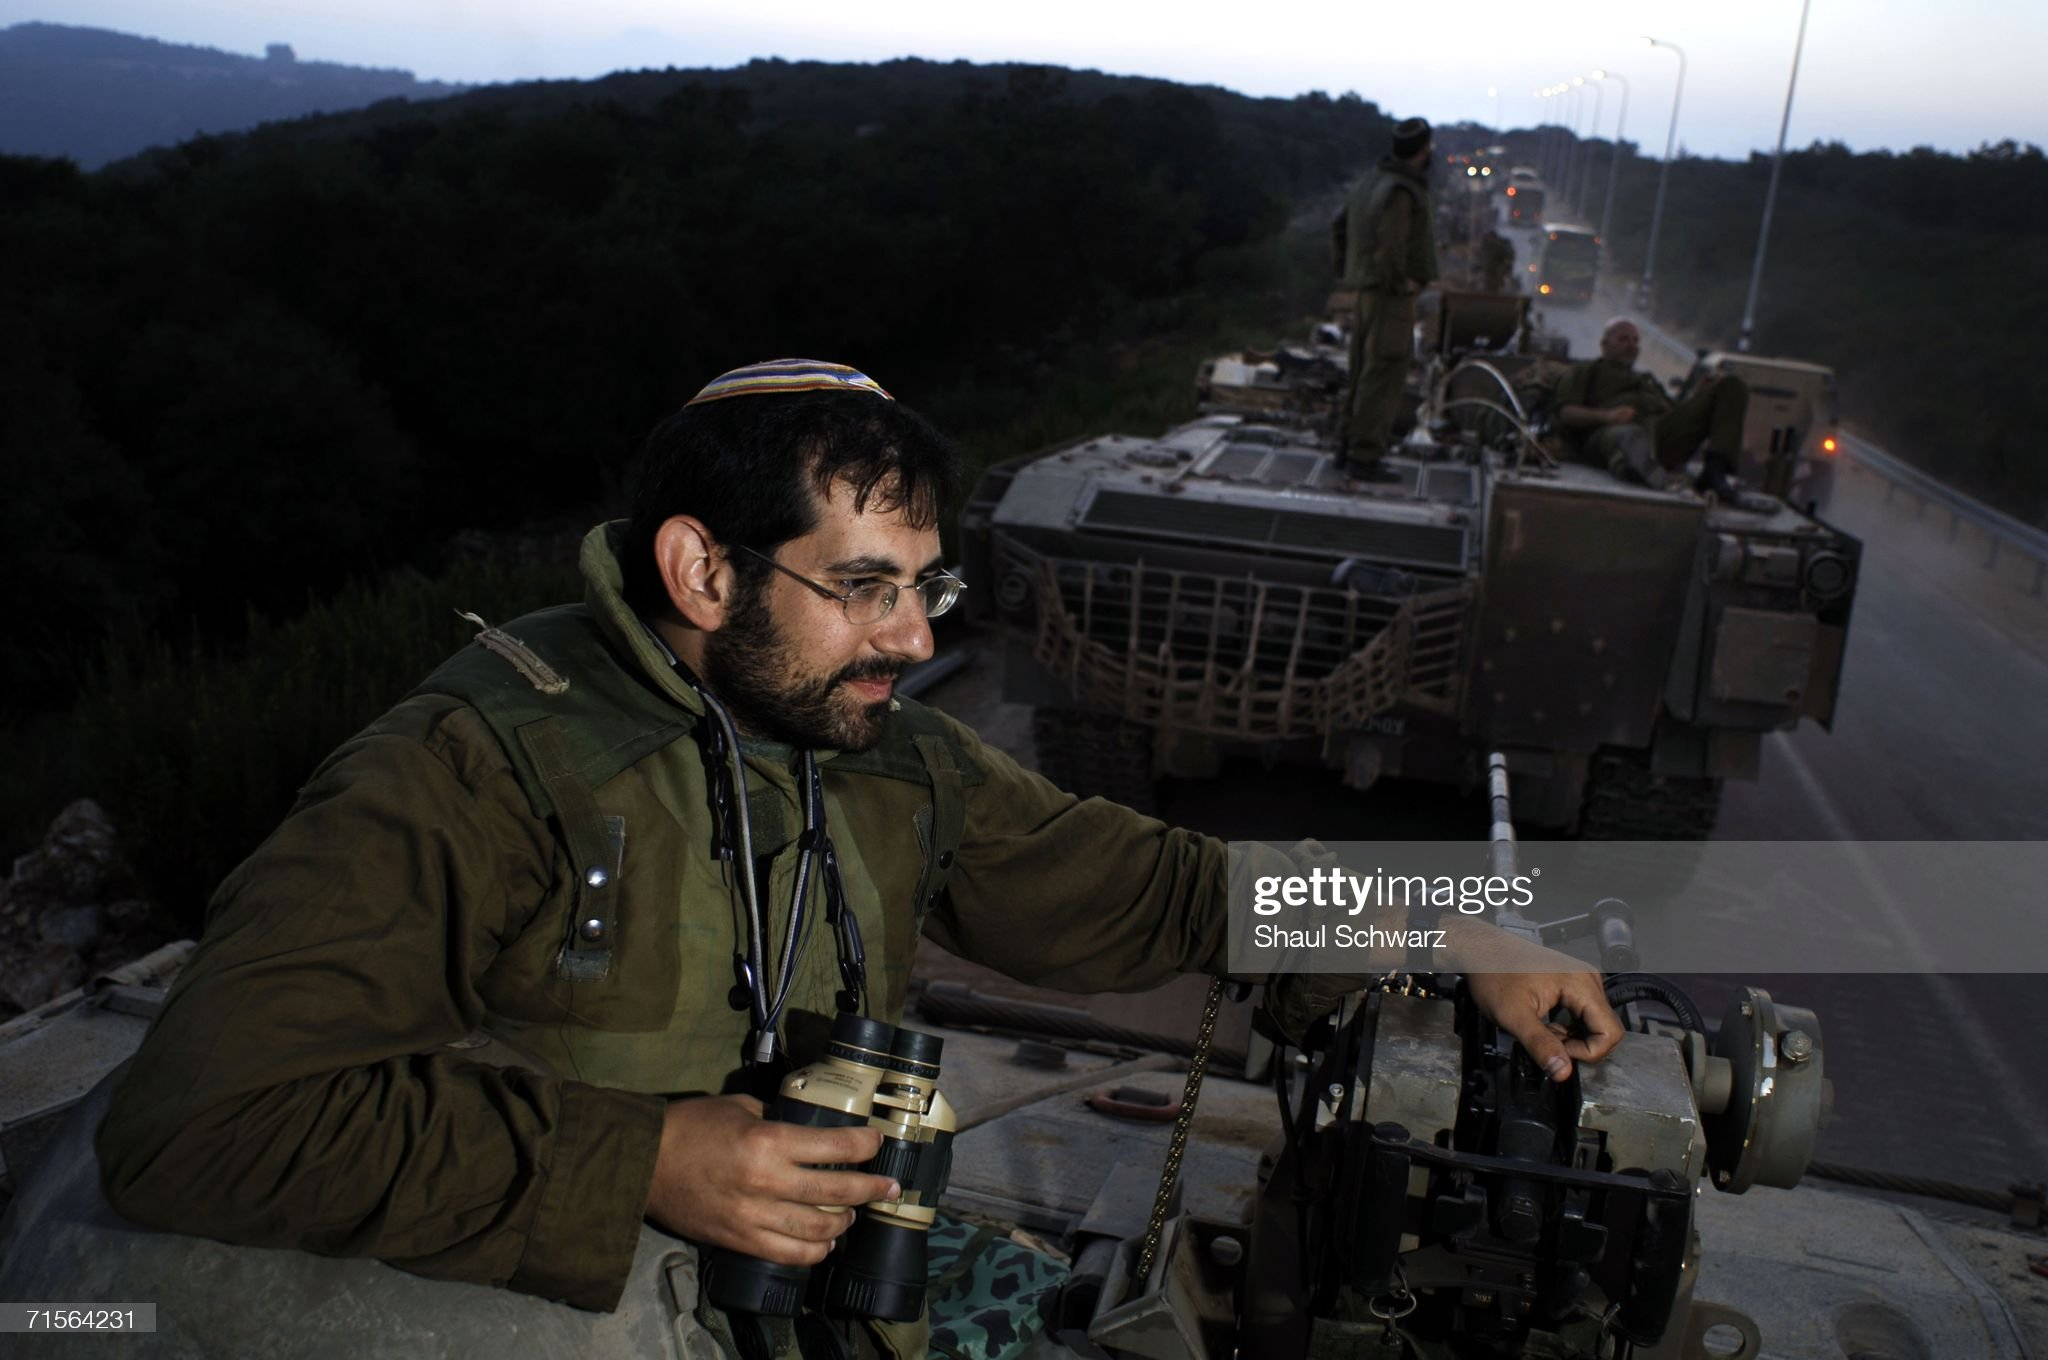 https://media.gettyimages.com/photos/long-line-of-tanks-and-armed-personal-carriers-are-parked-as-israeli-picture-id71564231?s=2048x2048